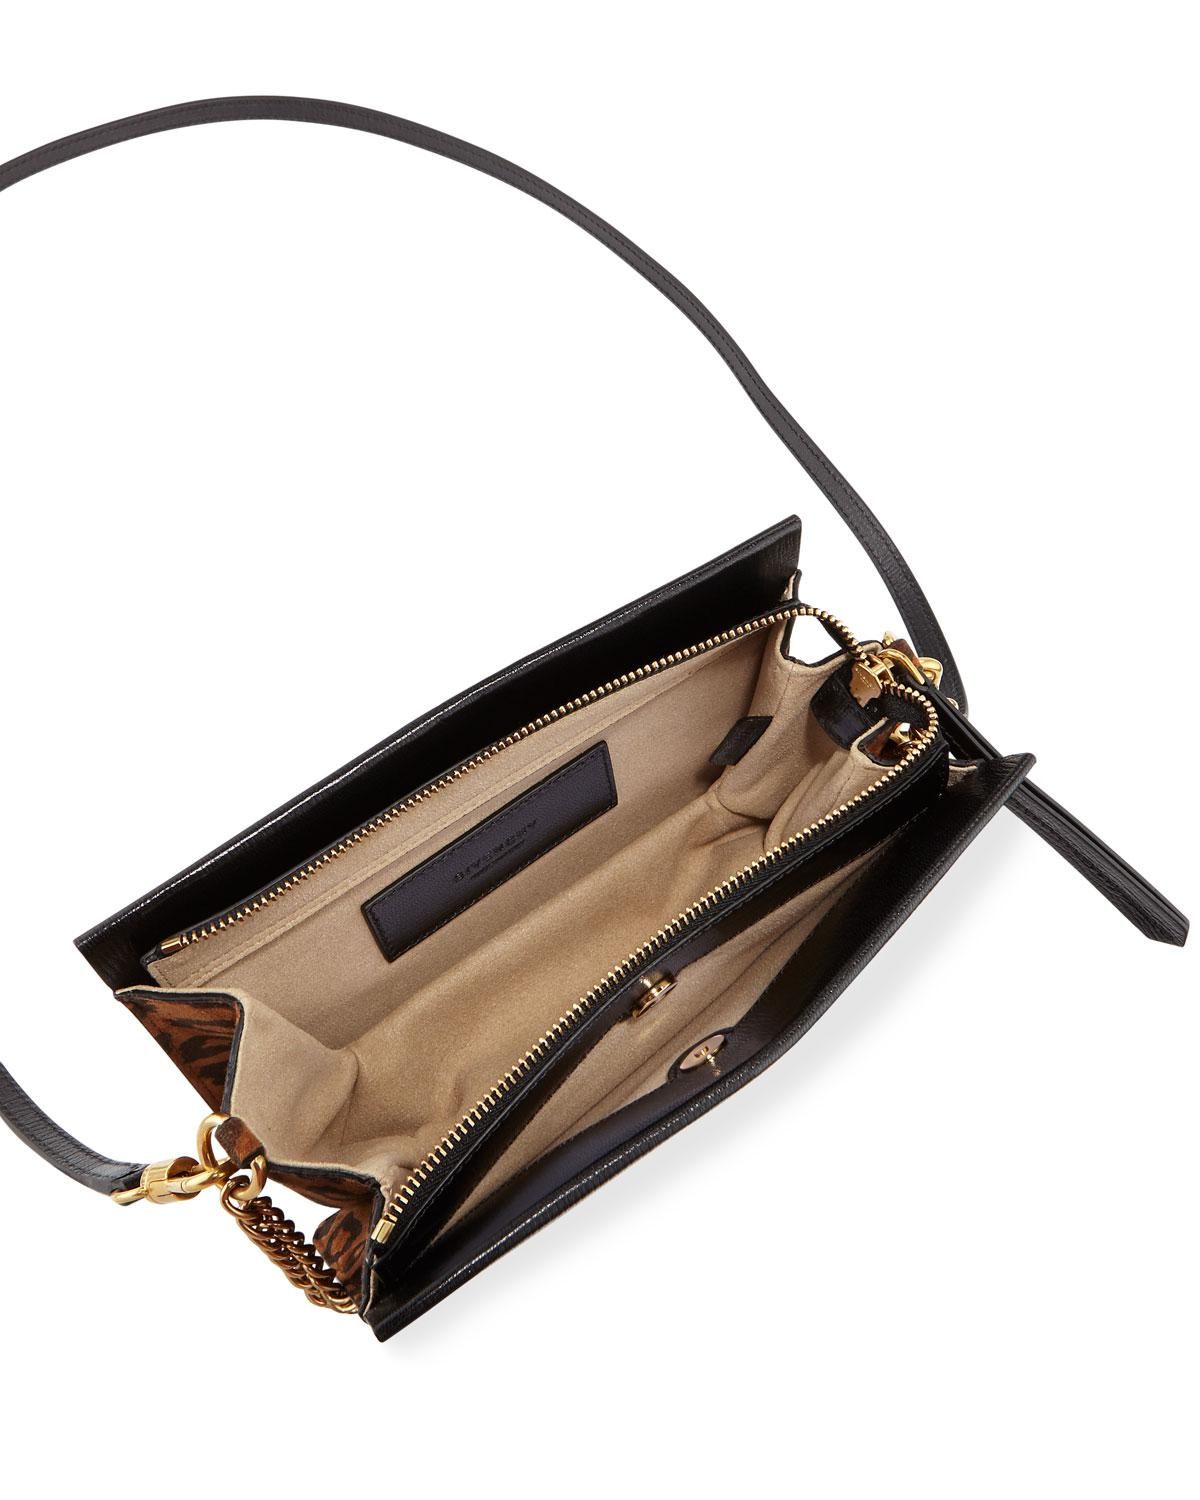 8c6953ff0691 Lyst - Givenchy Cross 3 Leather   Leopard Suede Crossbody Bag in Black